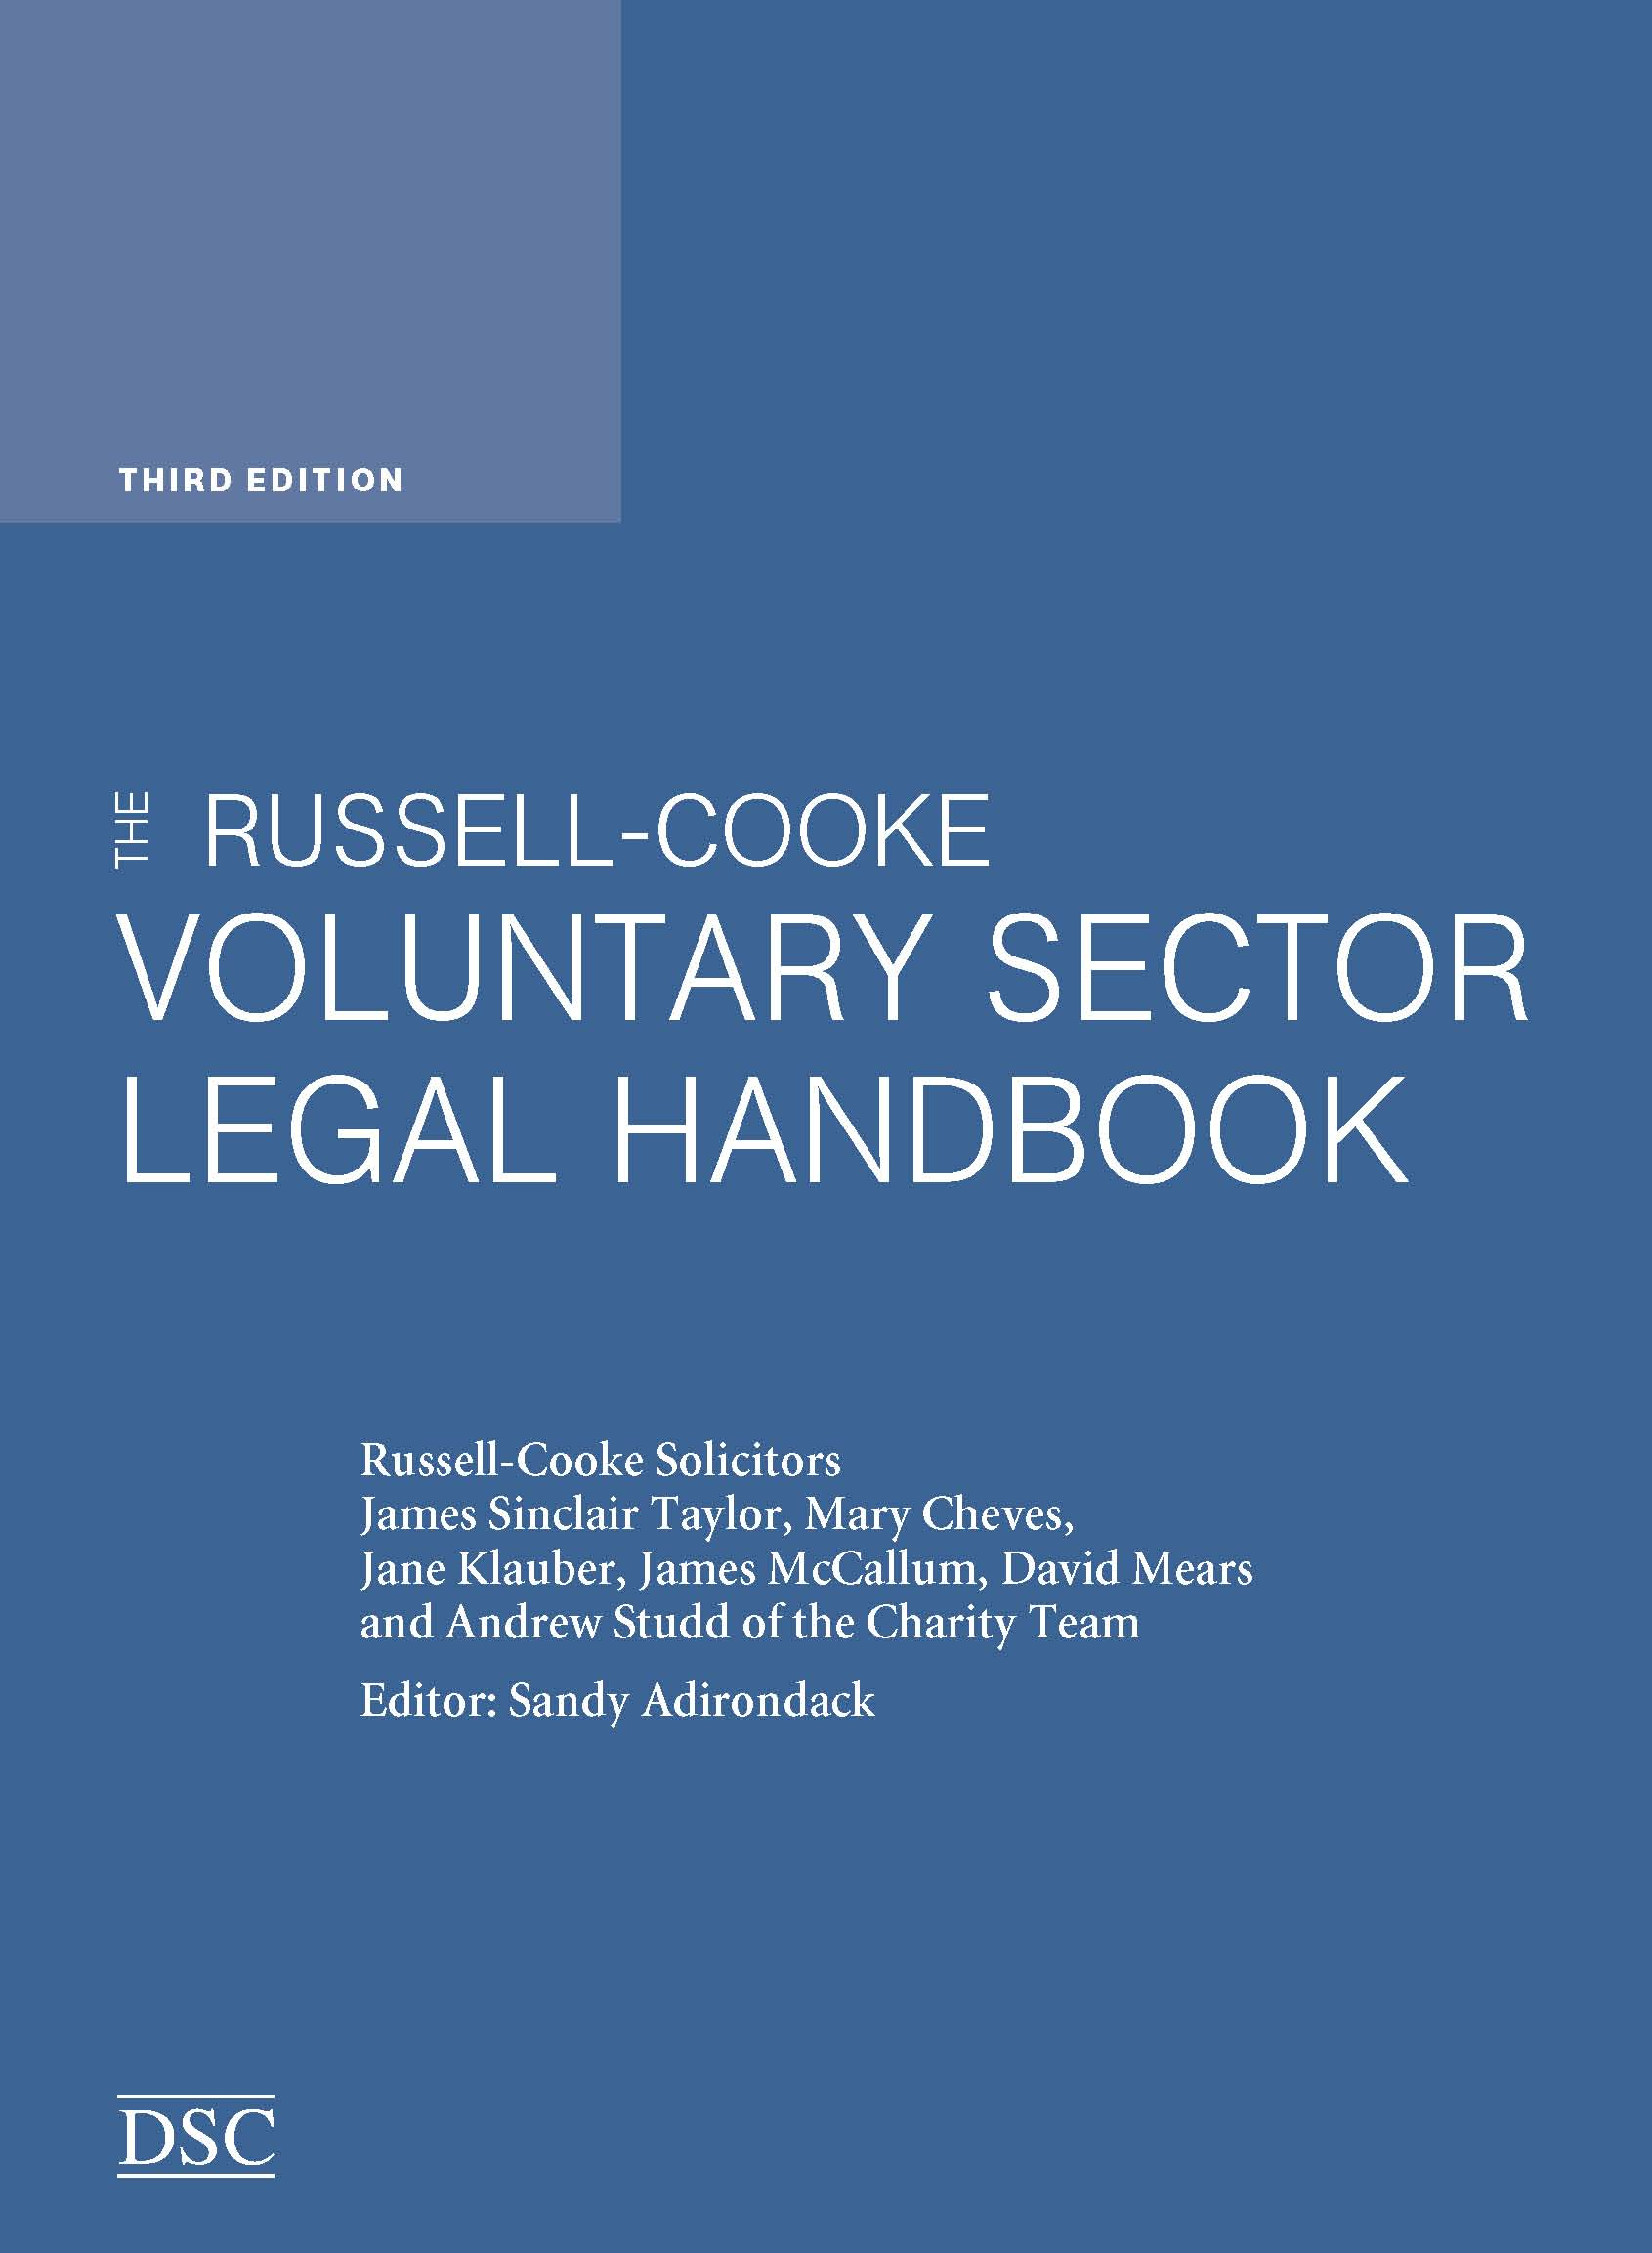 The Russell-Cooke Voluntary Sector Legal Handbook cover